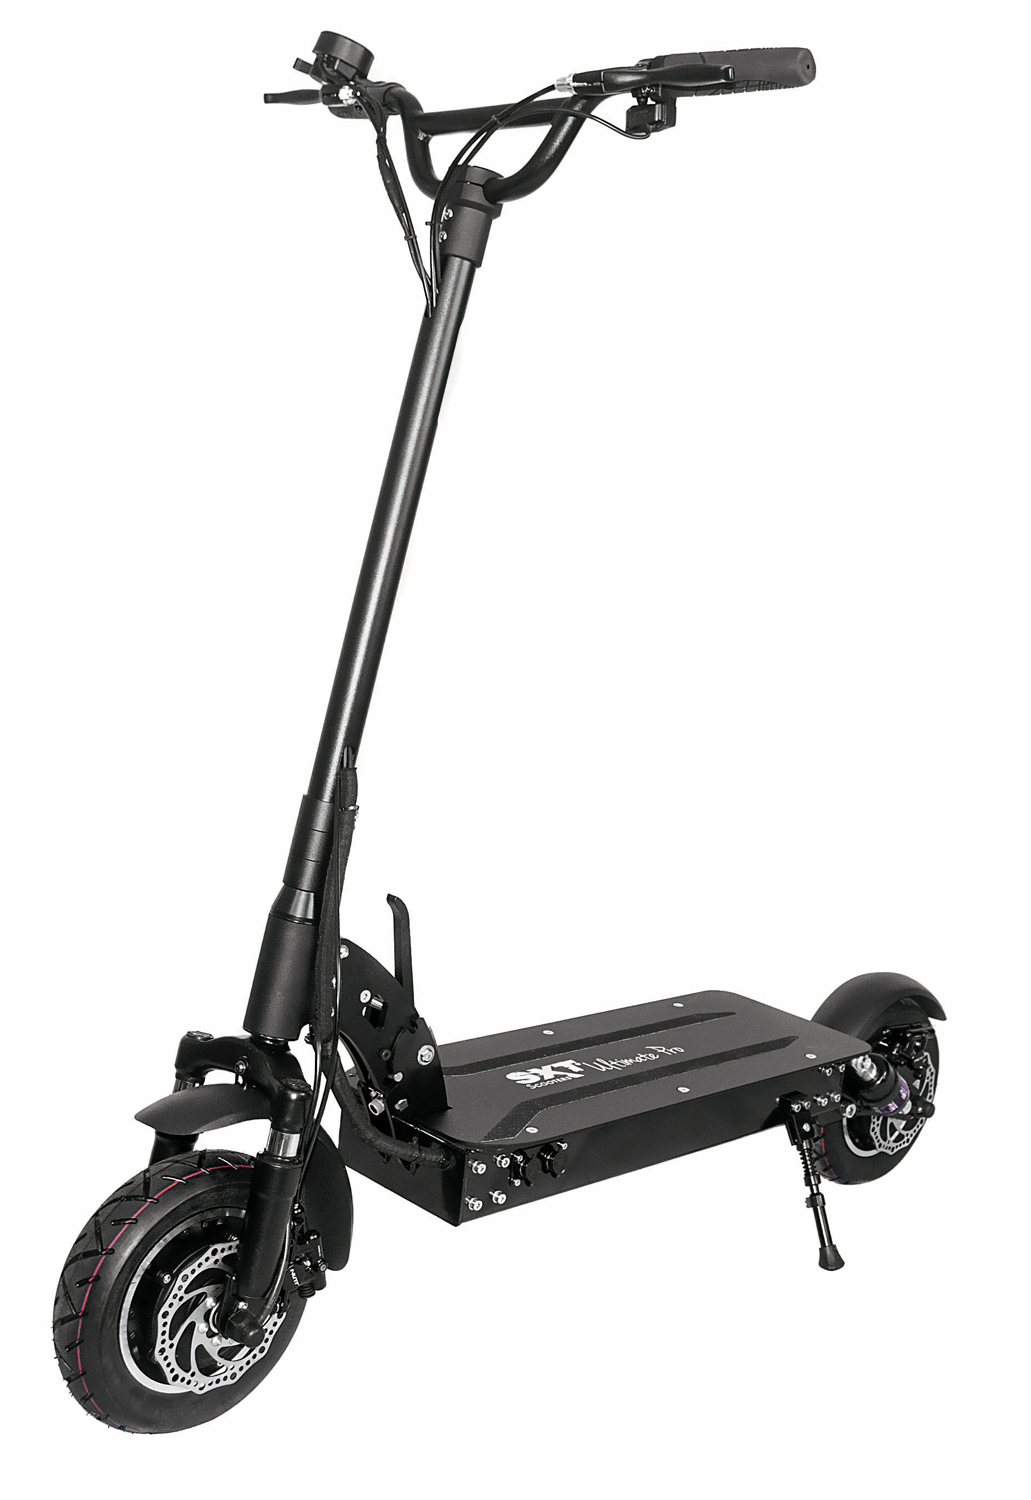 Your Online Escooter Store Sxt Ultimate Pro Electric Scooter Wiring Schematic Scooters For Sale 2 X 1320 W Dual Drive 65 Km H